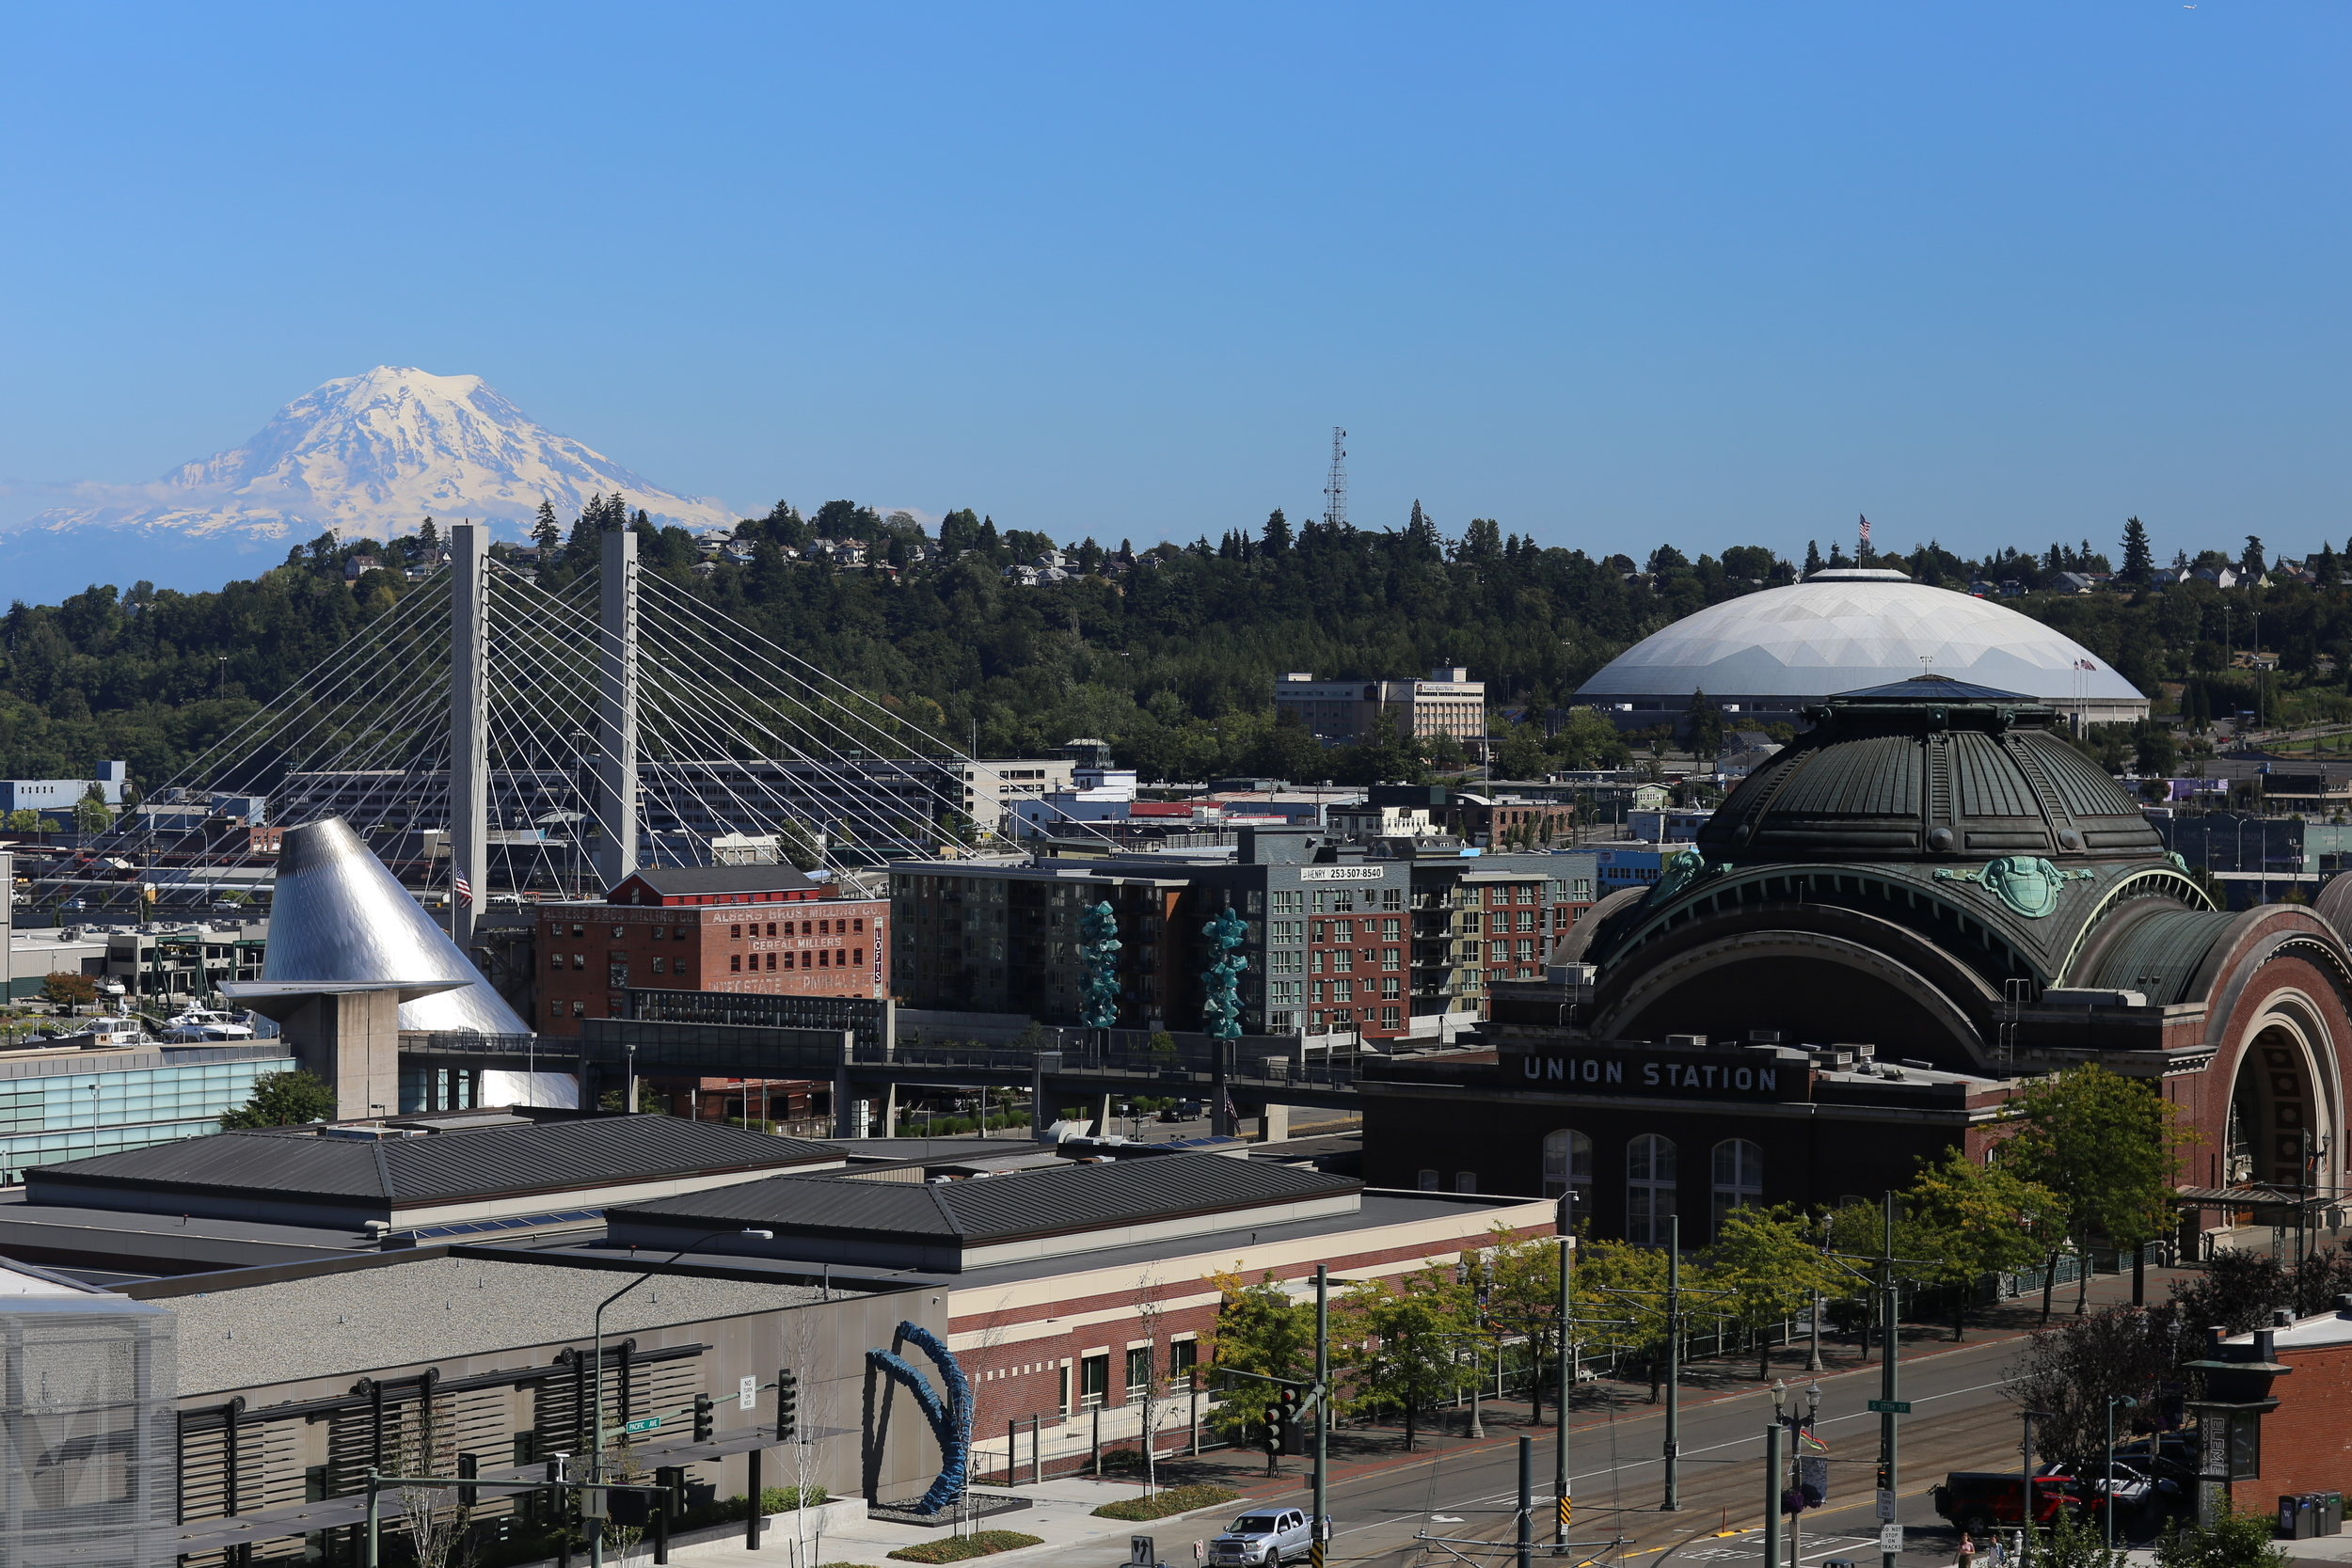 Views of Rainier and Tacoma from the convention center parking struture